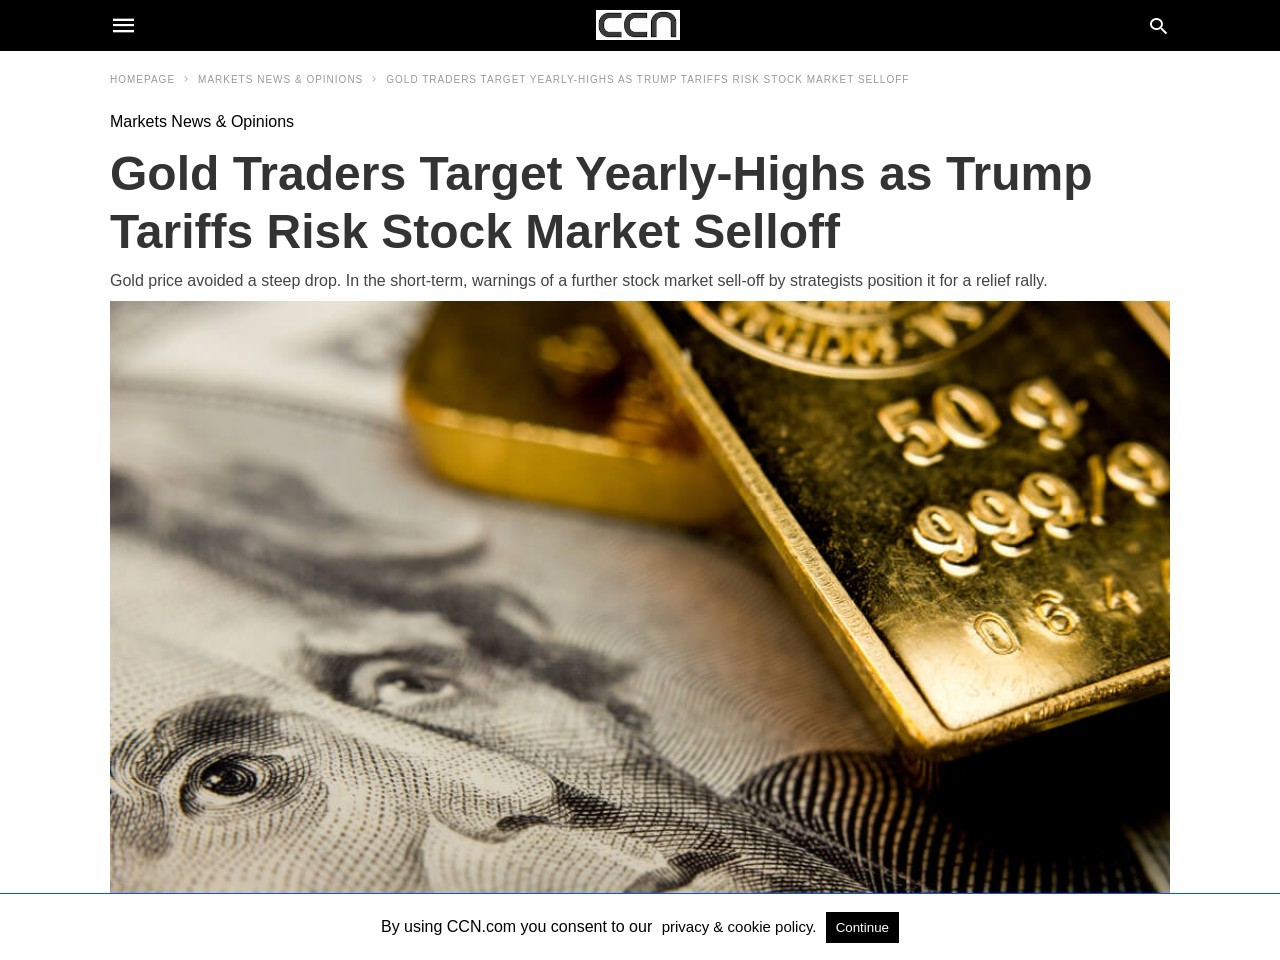 Gold Traders Target Yearly-Highs as Trump Tariffs Risk Stock Market Selloff